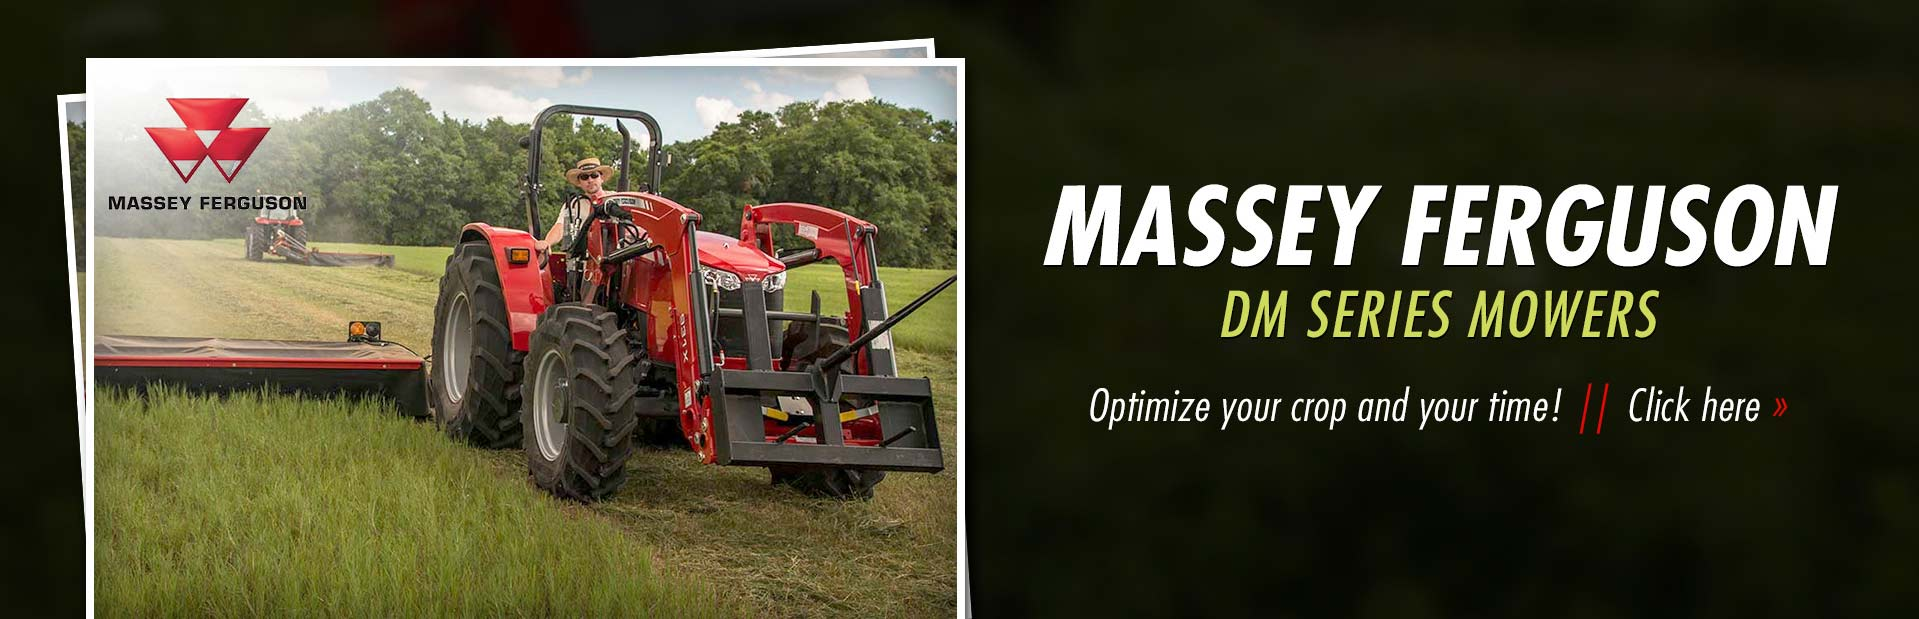 Optimize your crop and your time with Massey Ferguson DM series mowers! Click here to view our selec